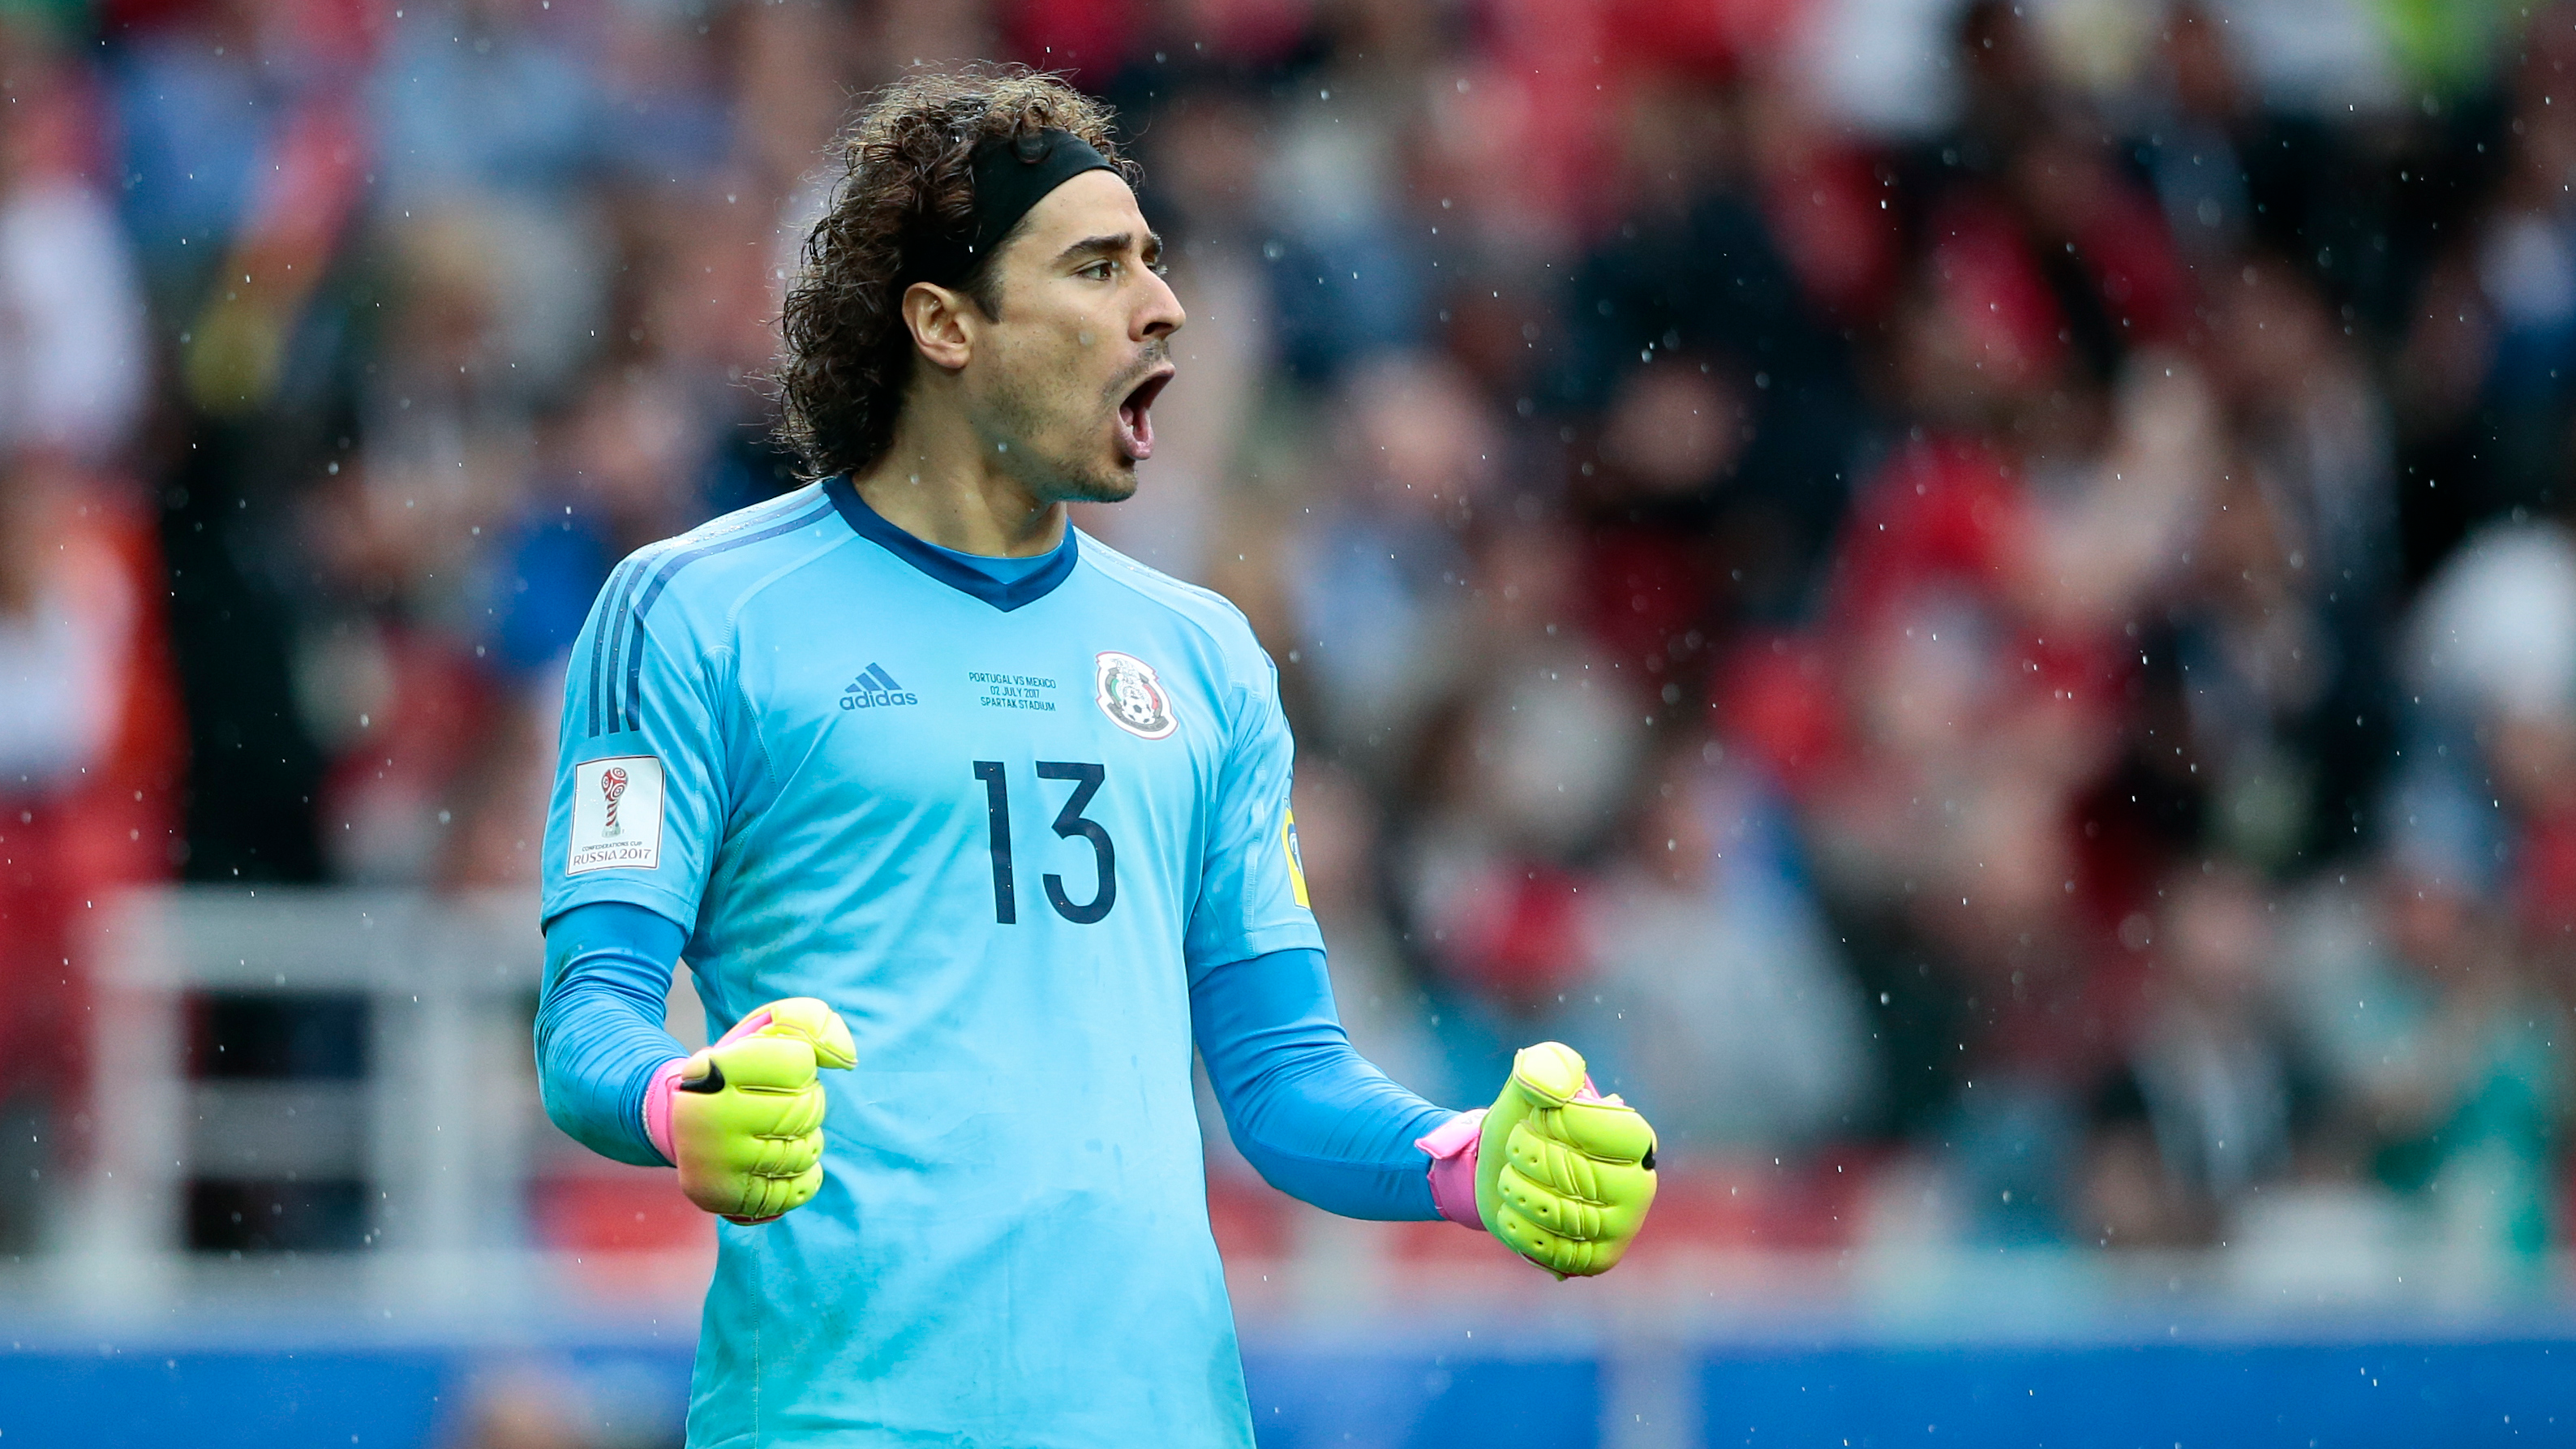 5ea3c09aa Guillermo Ochoa s New Shirt Number Is An Absolute Disgrace - SPORTbible